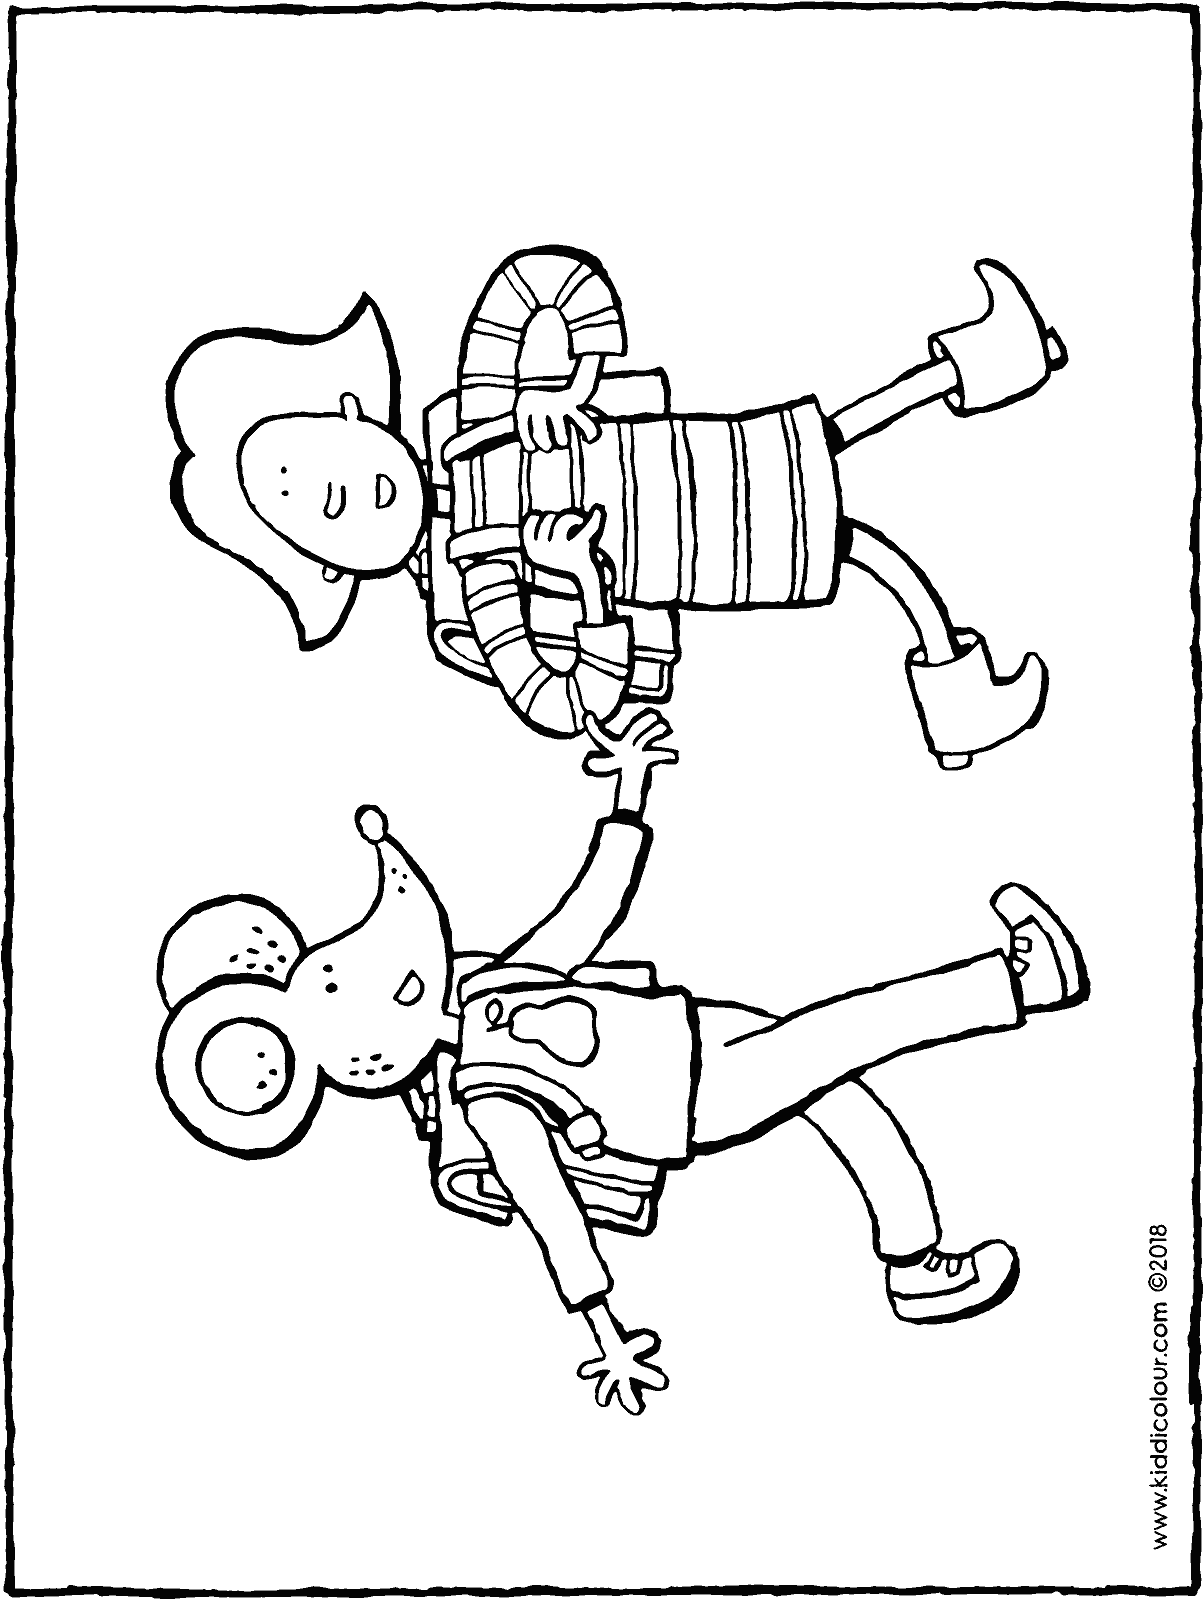 Emma and Thomas go to school colouring page drawing picture 01H